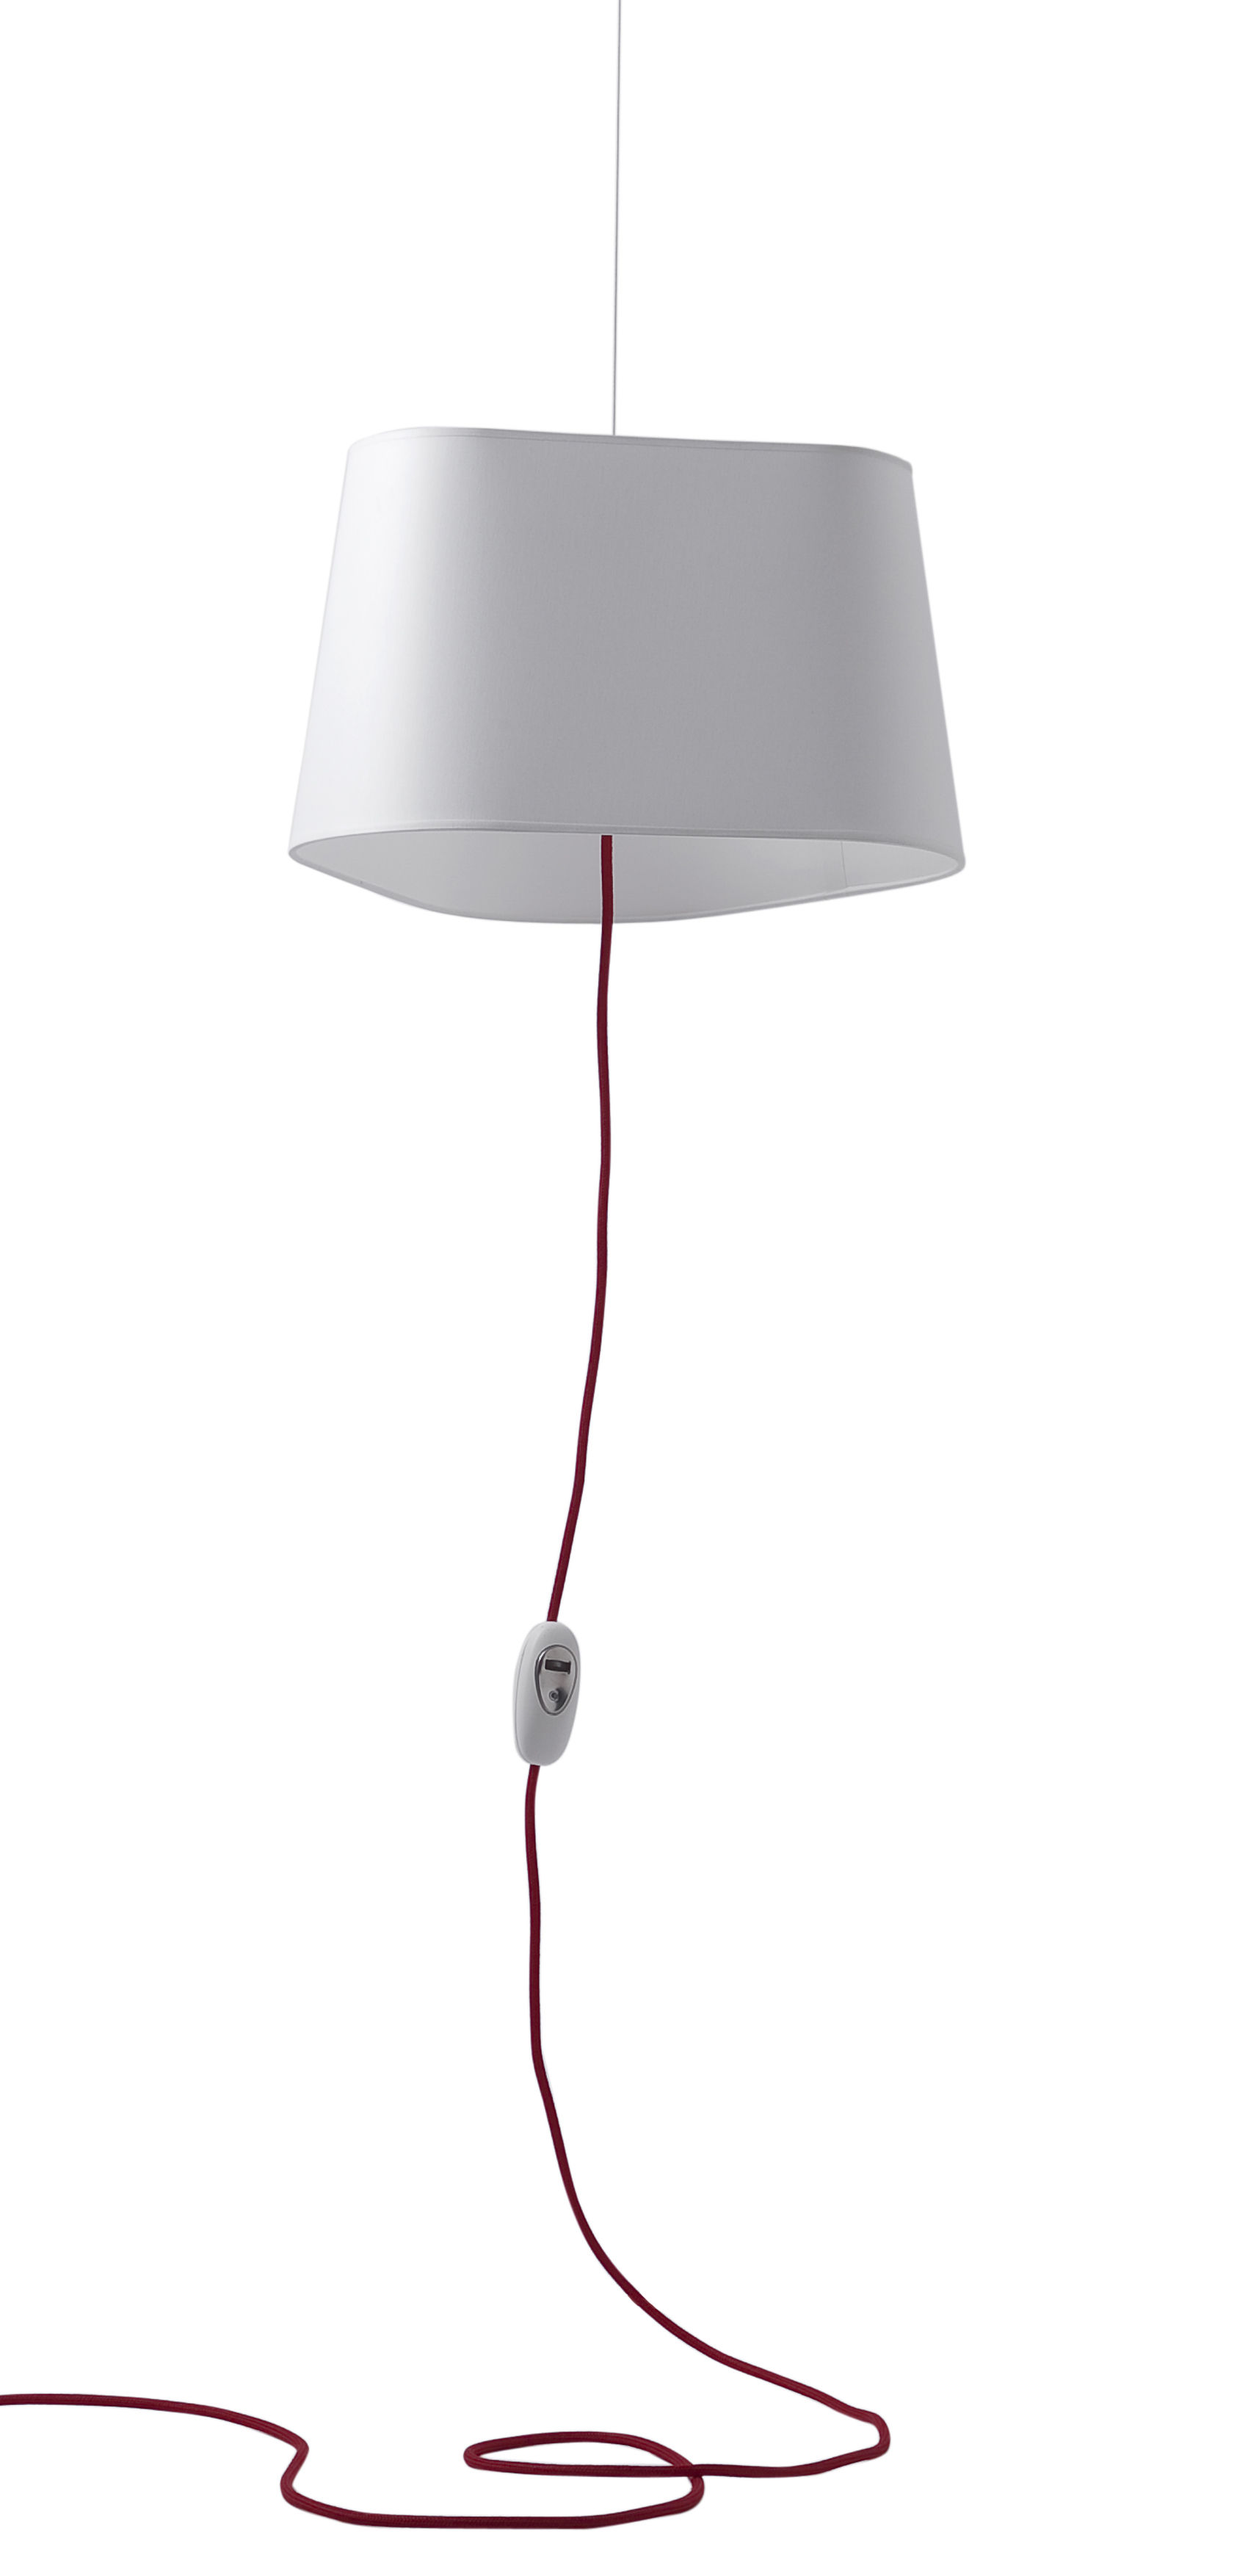 Lighting - Pendant Lighting - Grand Nuage Pendant by Designheure - White - Cotton